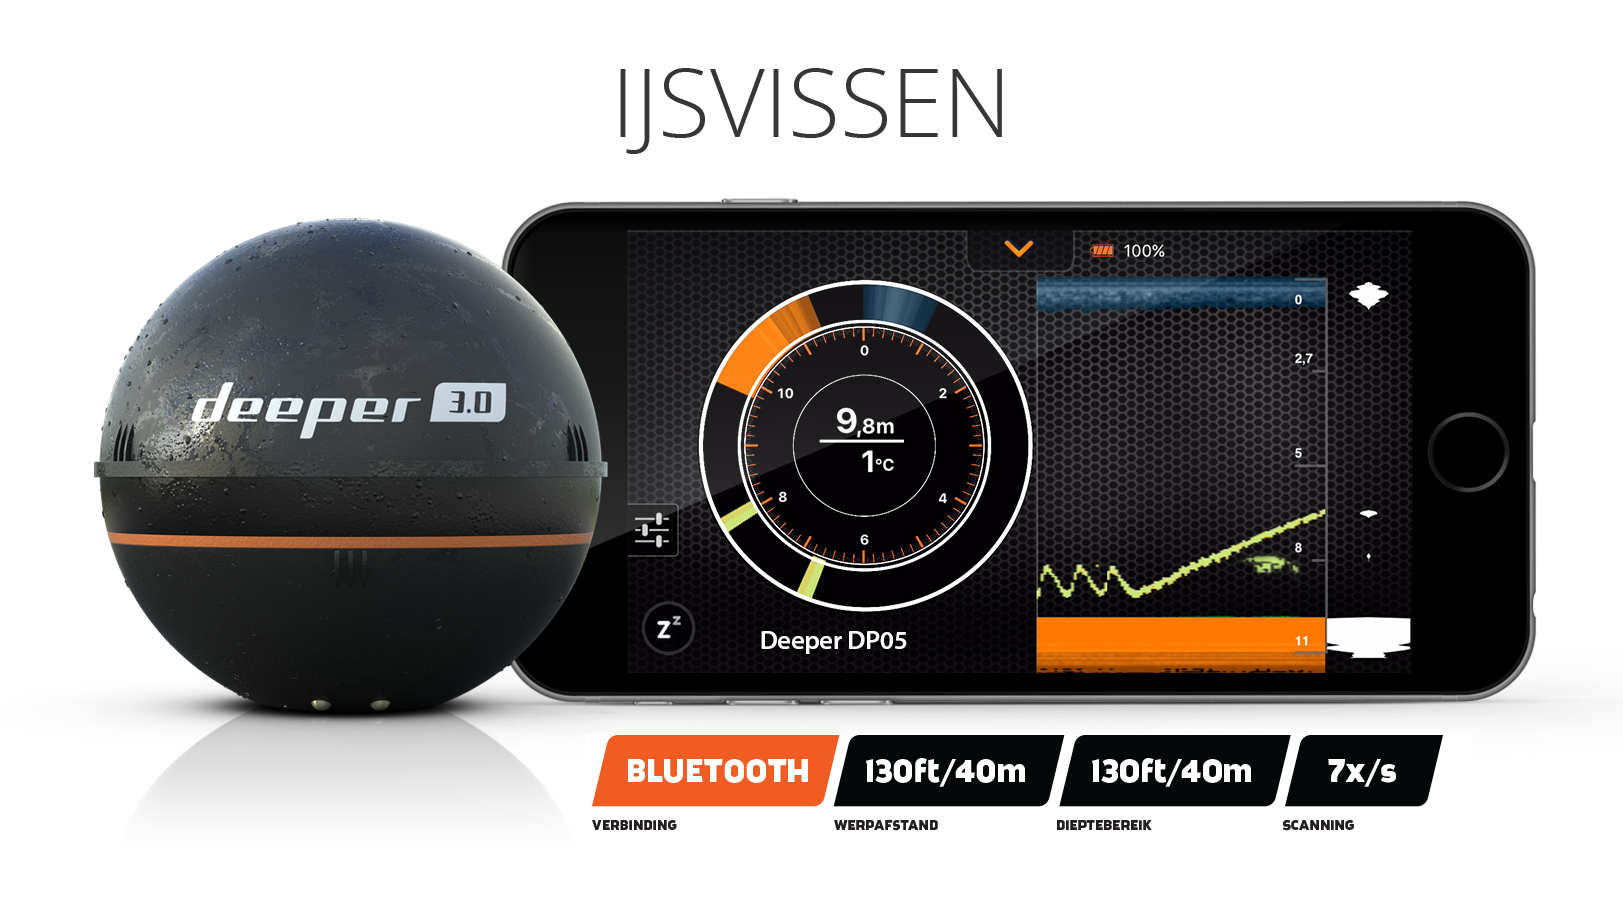 deeper, wireless fish finder 3.0 - clobber tek, Fish Finder